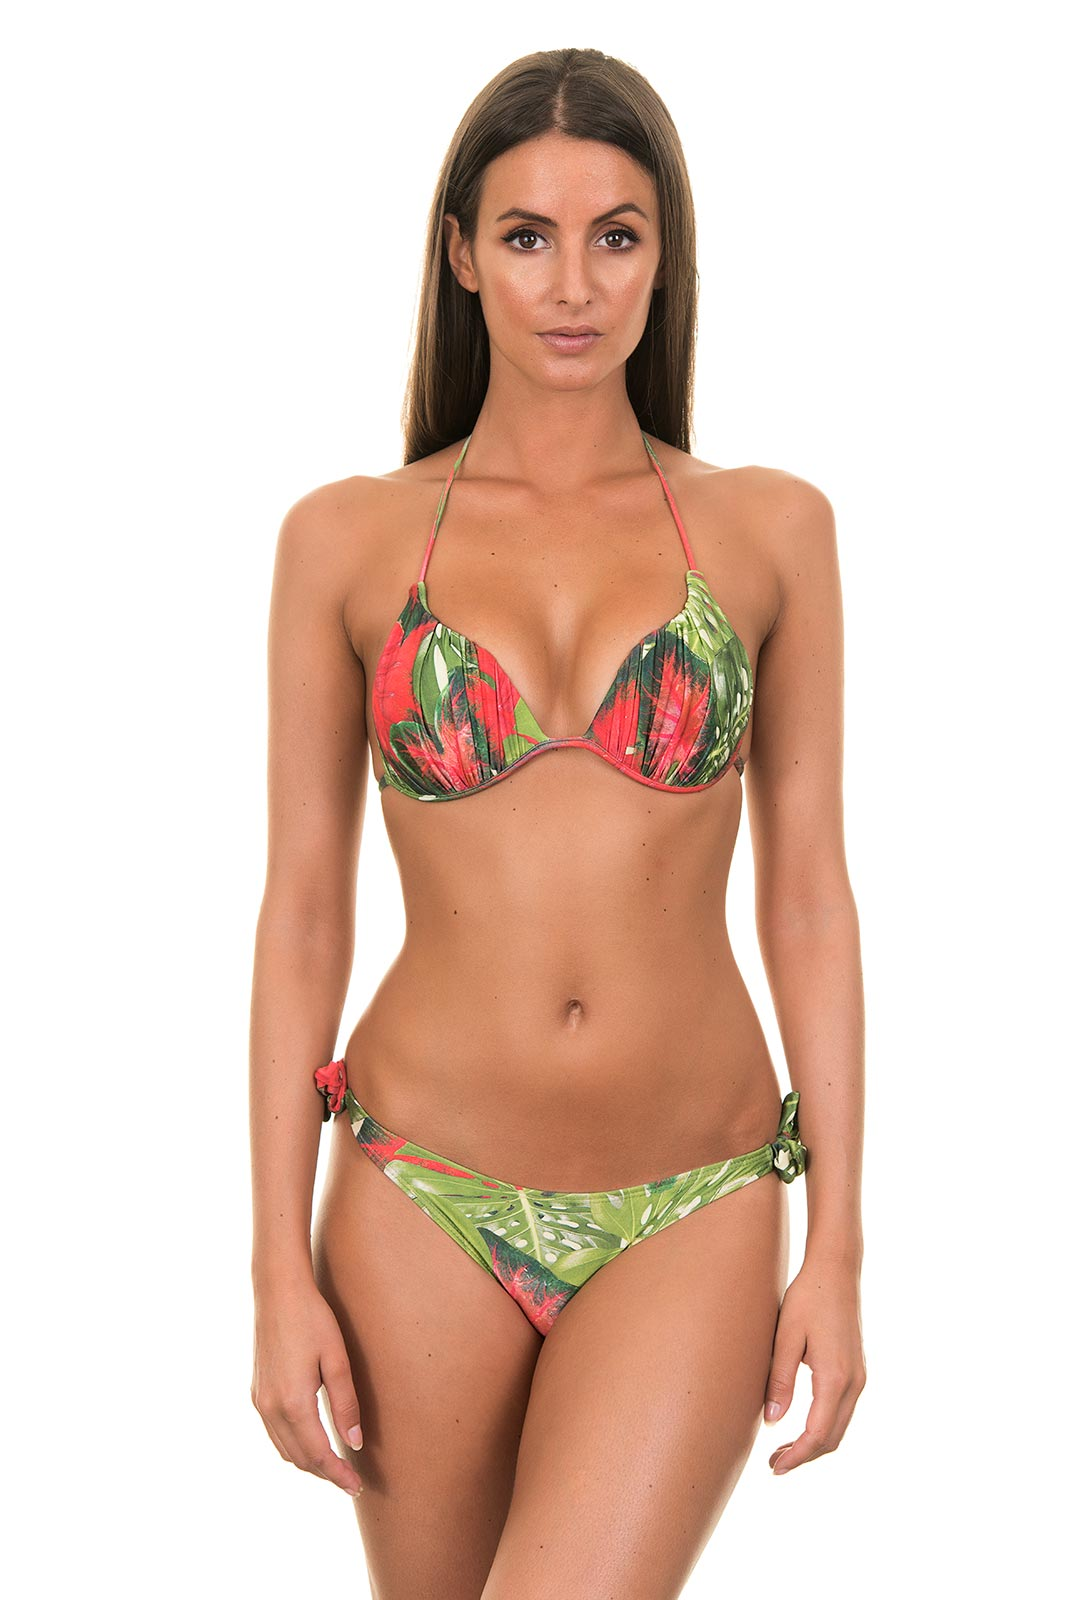 red and green brazilian bikini with triangle cups costela de adao. Black Bedroom Furniture Sets. Home Design Ideas